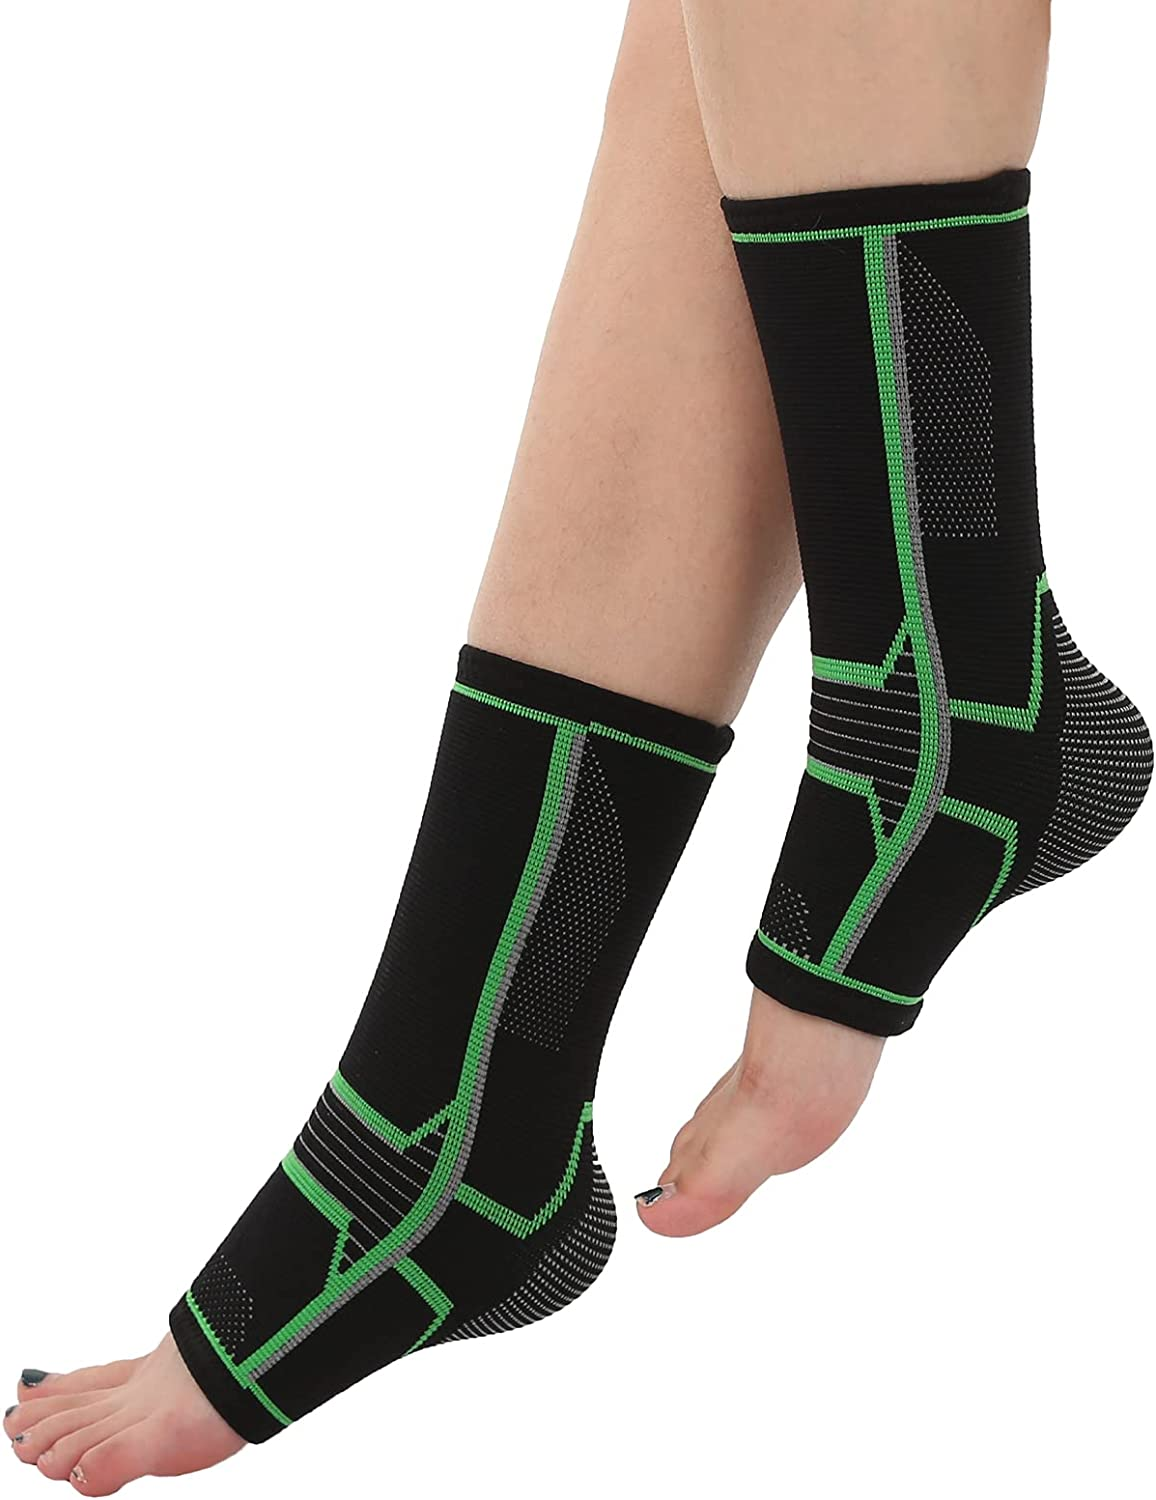 Ankle Daily bargain sale Challenge the lowest price Brace Compression Support Sprained Sleeve Pair for